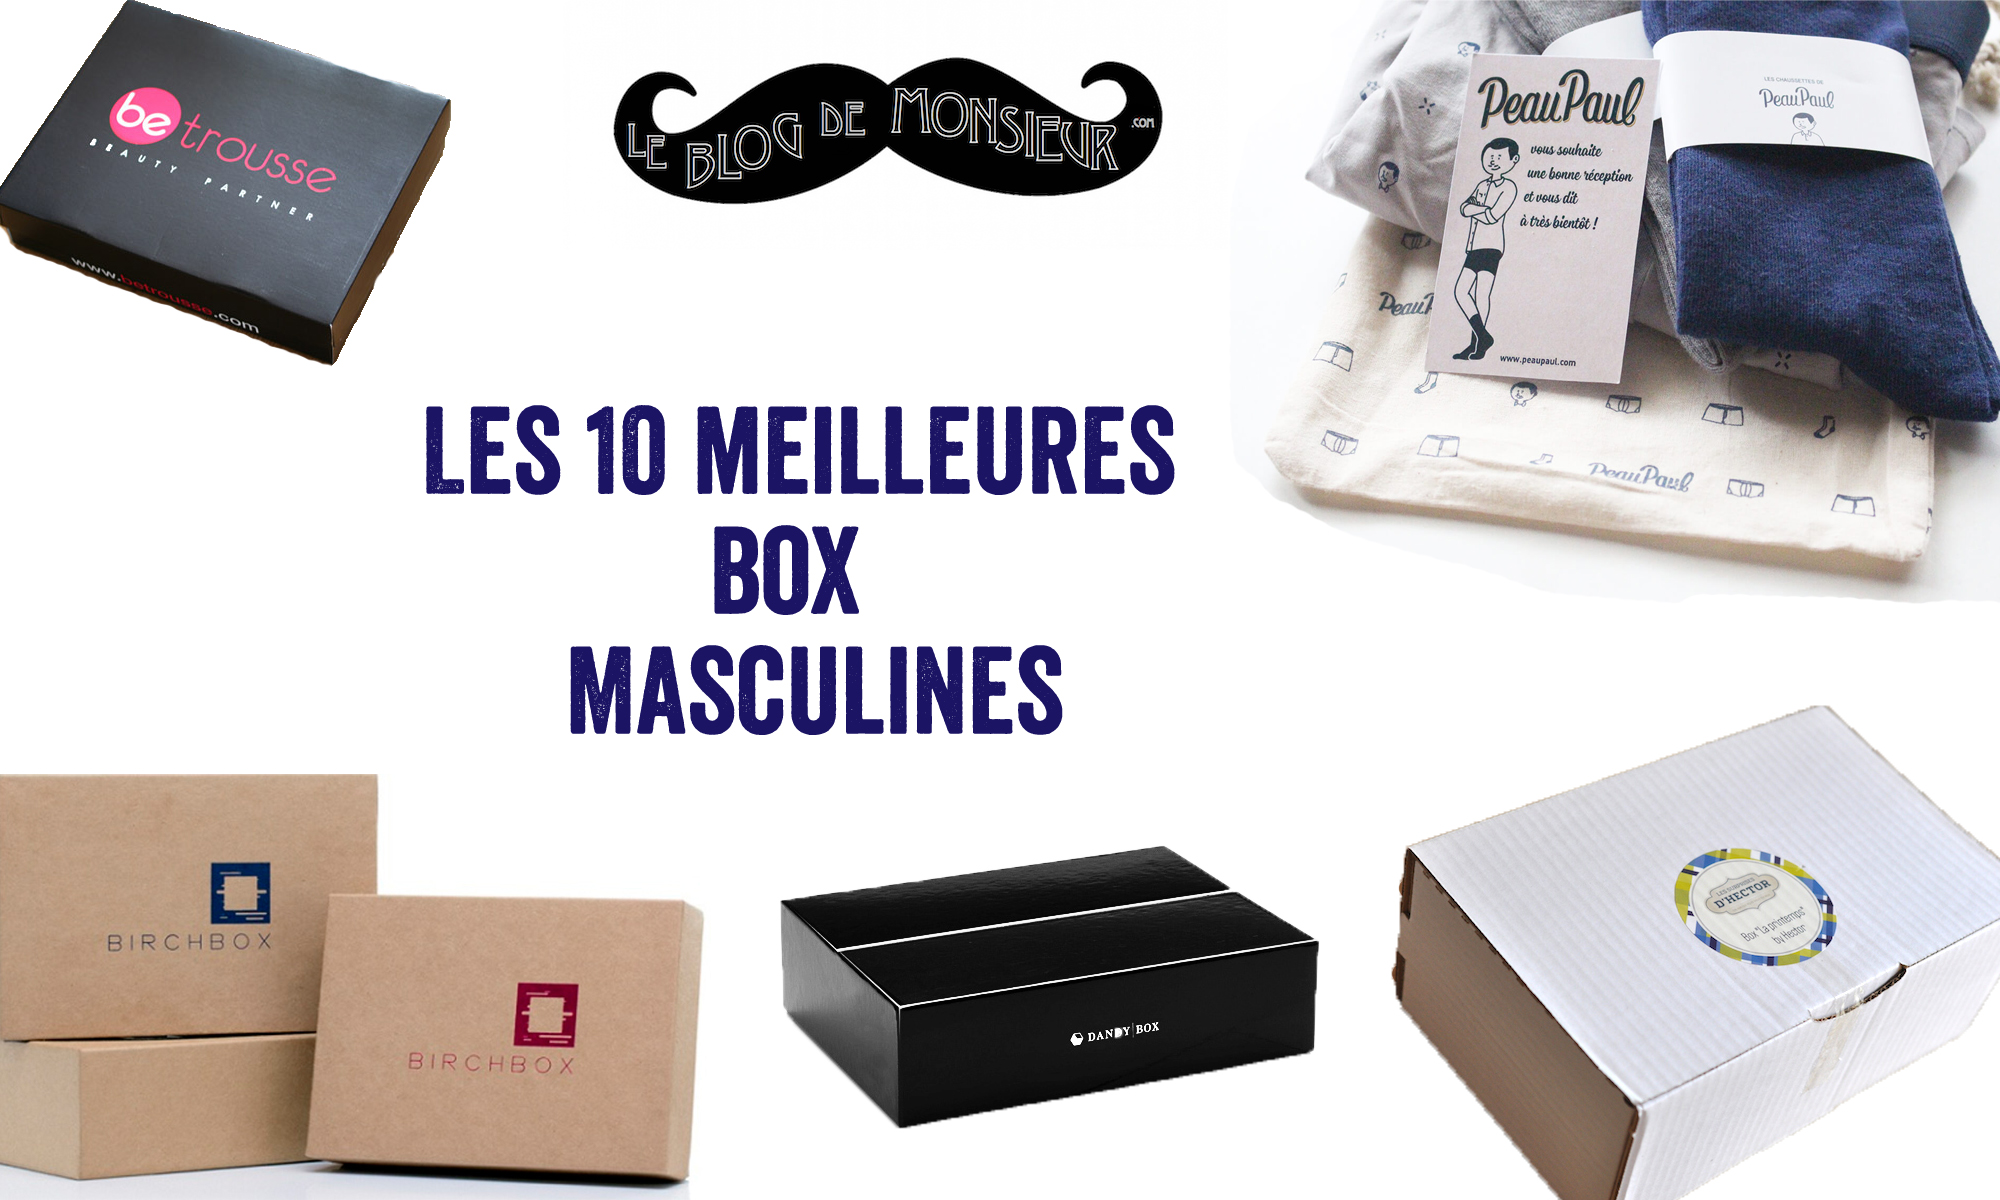 les 10 meilleures box masculines le blog de monsieur blog mode homme. Black Bedroom Furniture Sets. Home Design Ideas